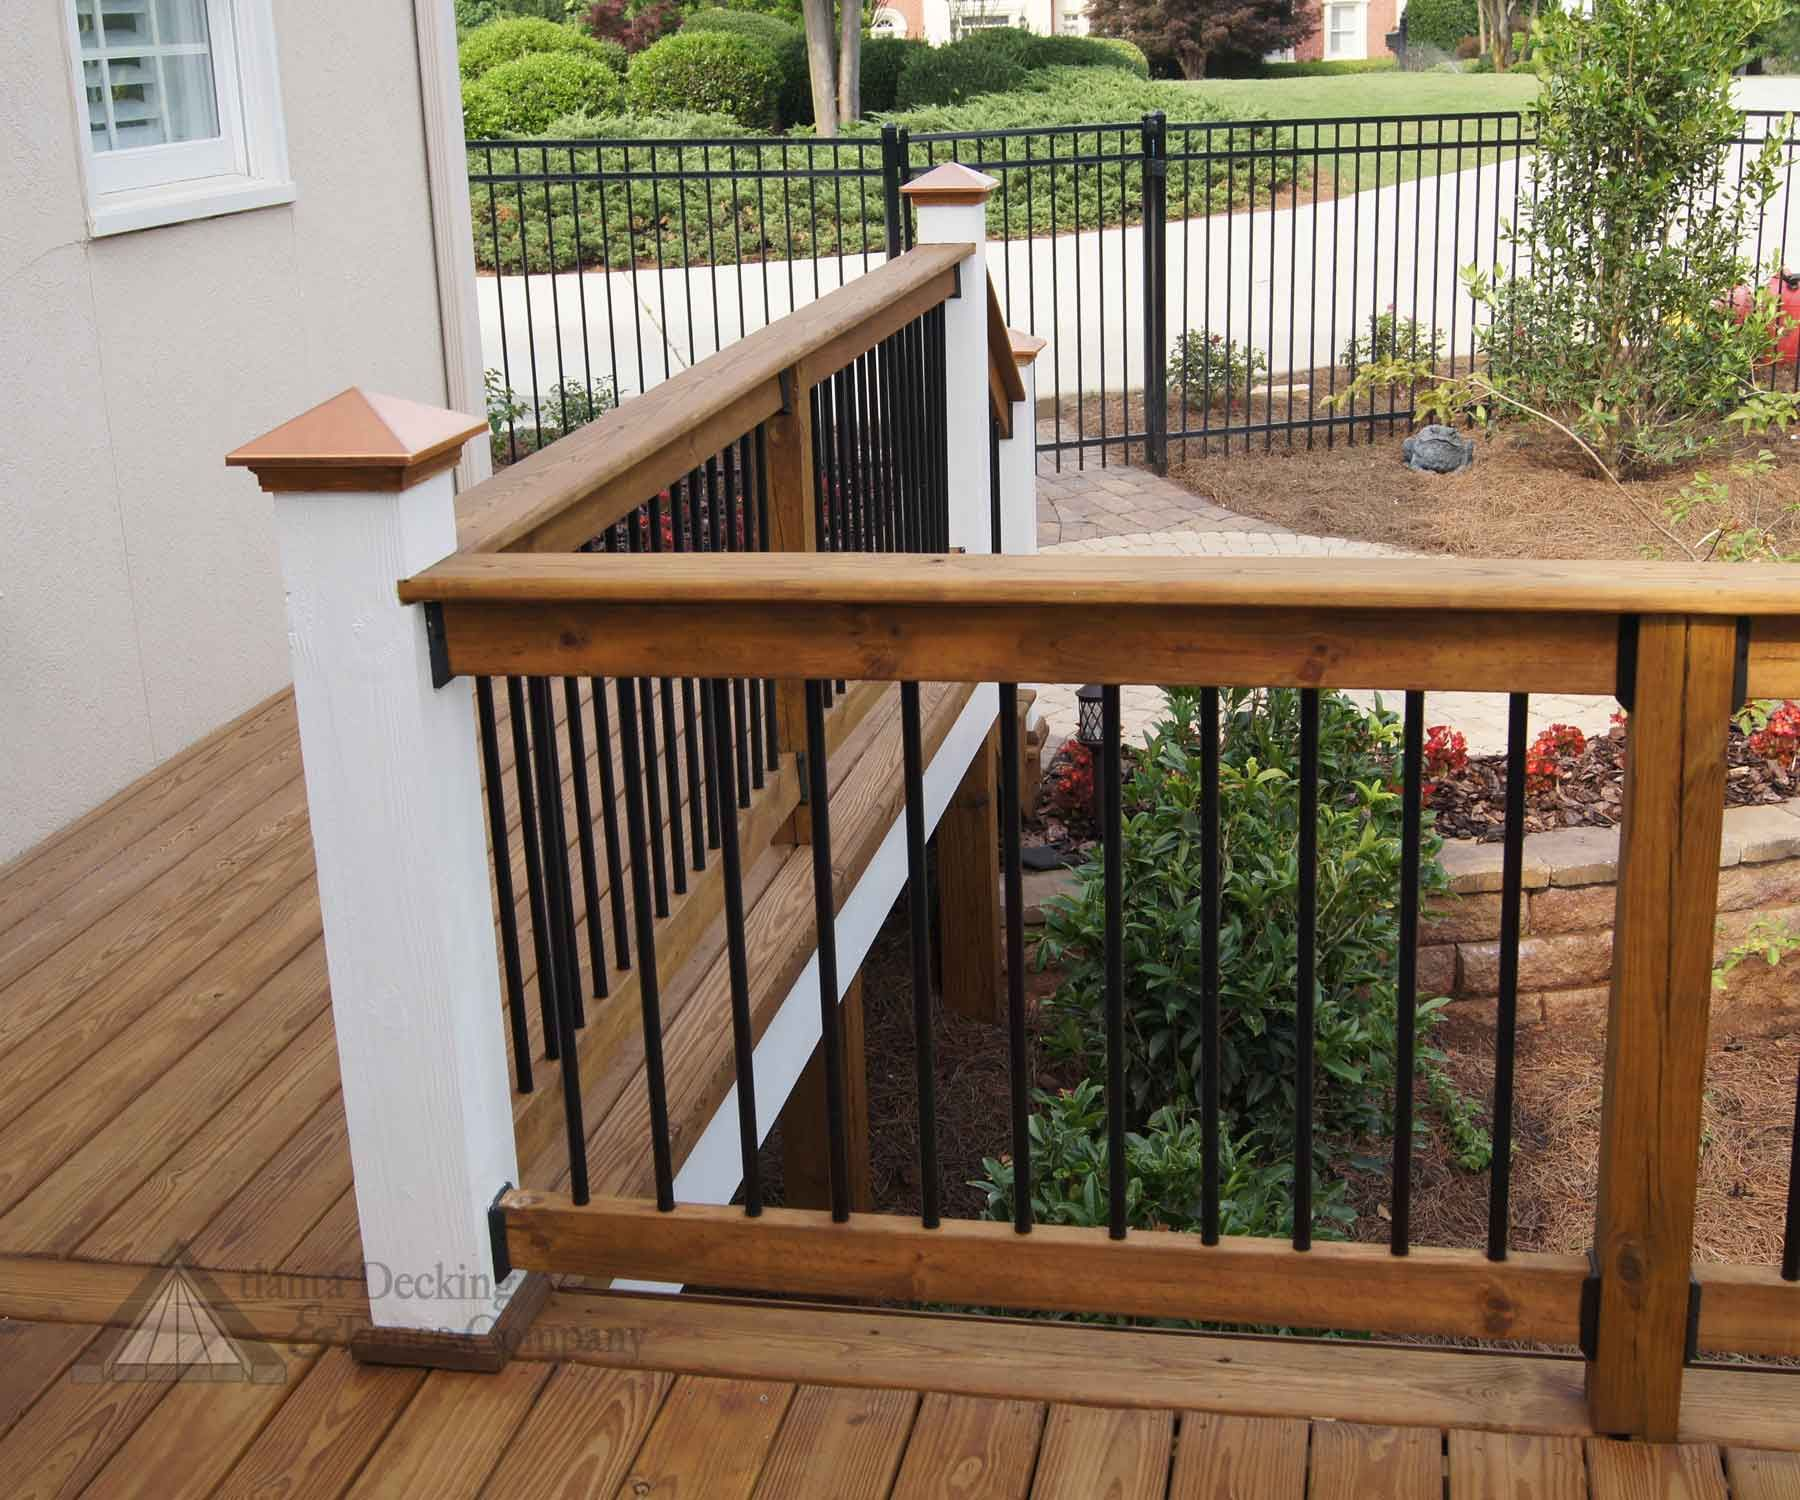 Ideas For Deck Designs deck plans and ideas decking designs for a truly great outdoor space great railing Wallpaper Deck Railing Ideas 1800x1500 Pin Wood